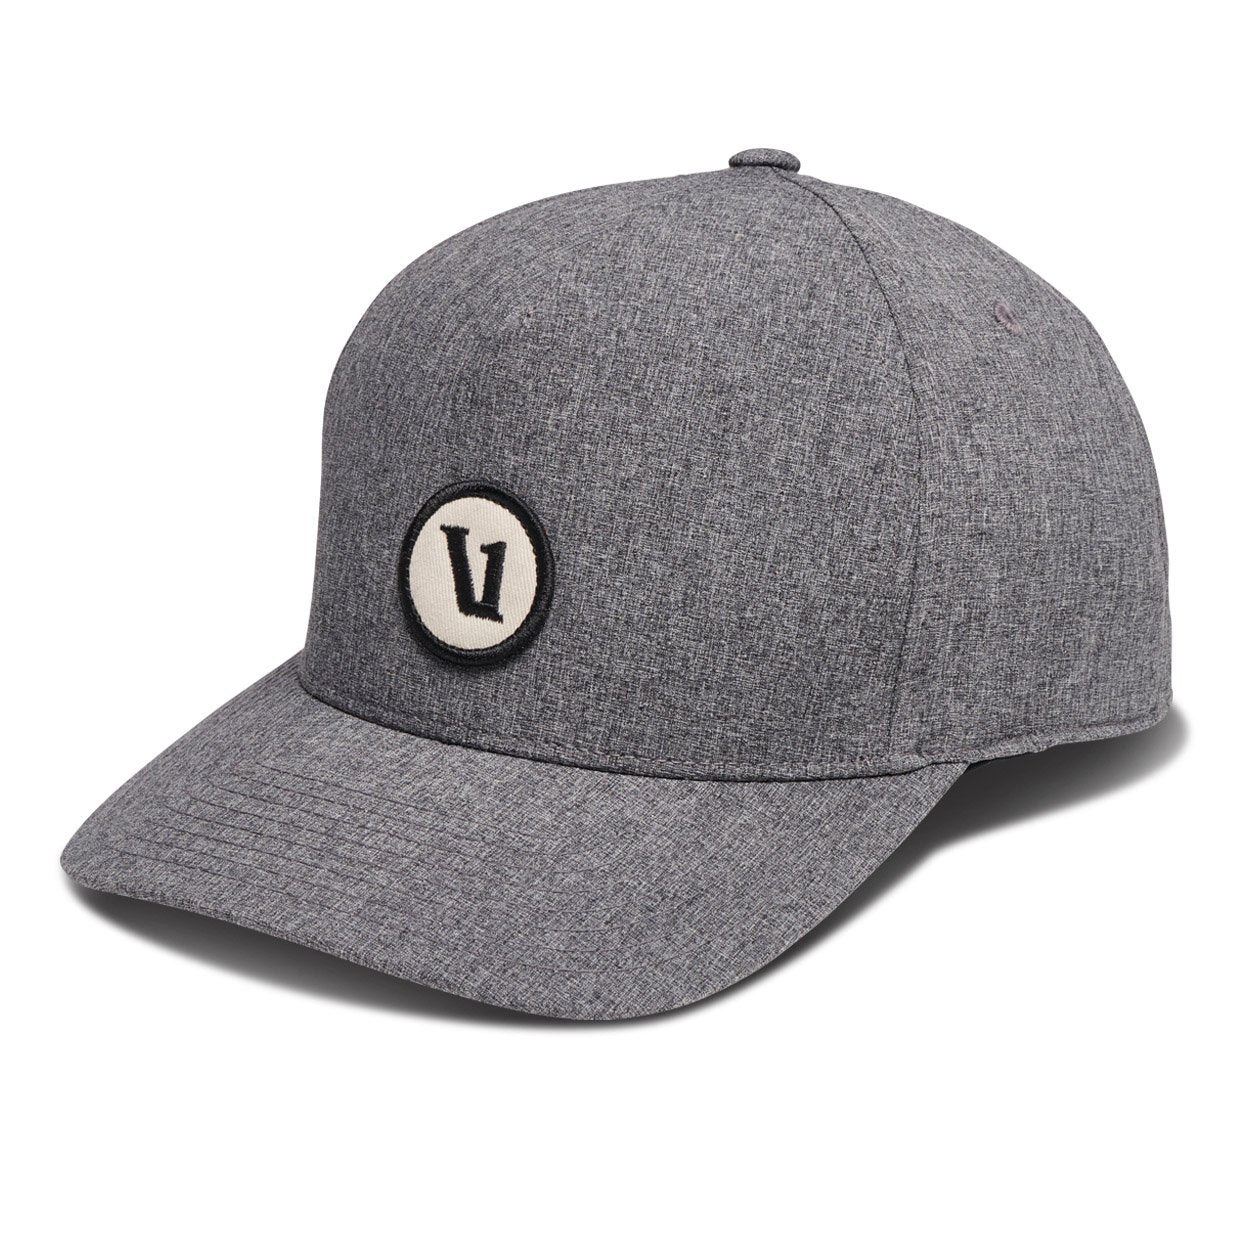 V1 Patch Performance Hat - Heather Grey - Heather Grey 1